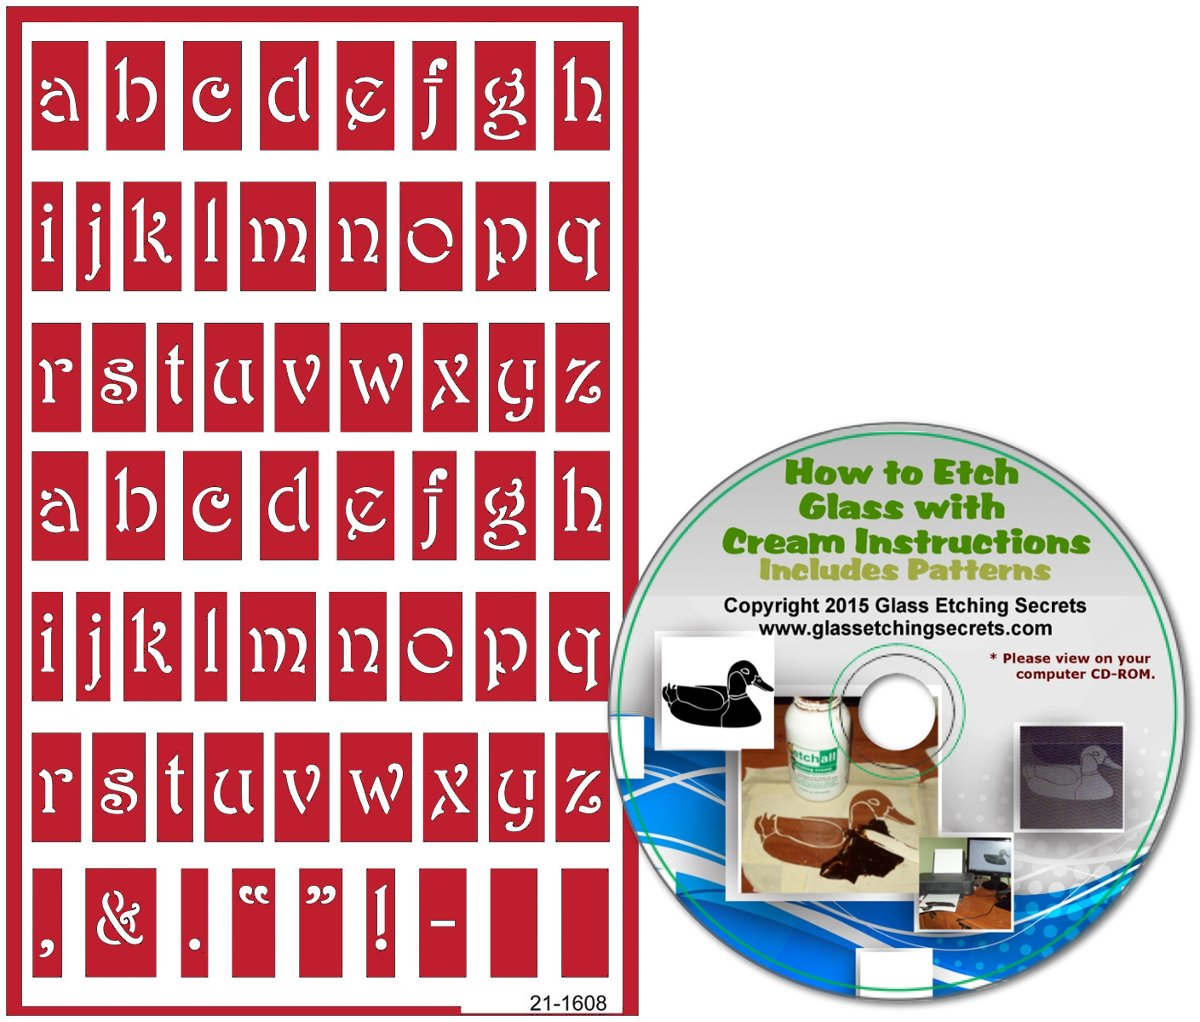 B019DC7ILE Reusable Glass Etching Stencils, Lower Case Letters + How to Etch & Patterns CD 71RBfxRv2BGL